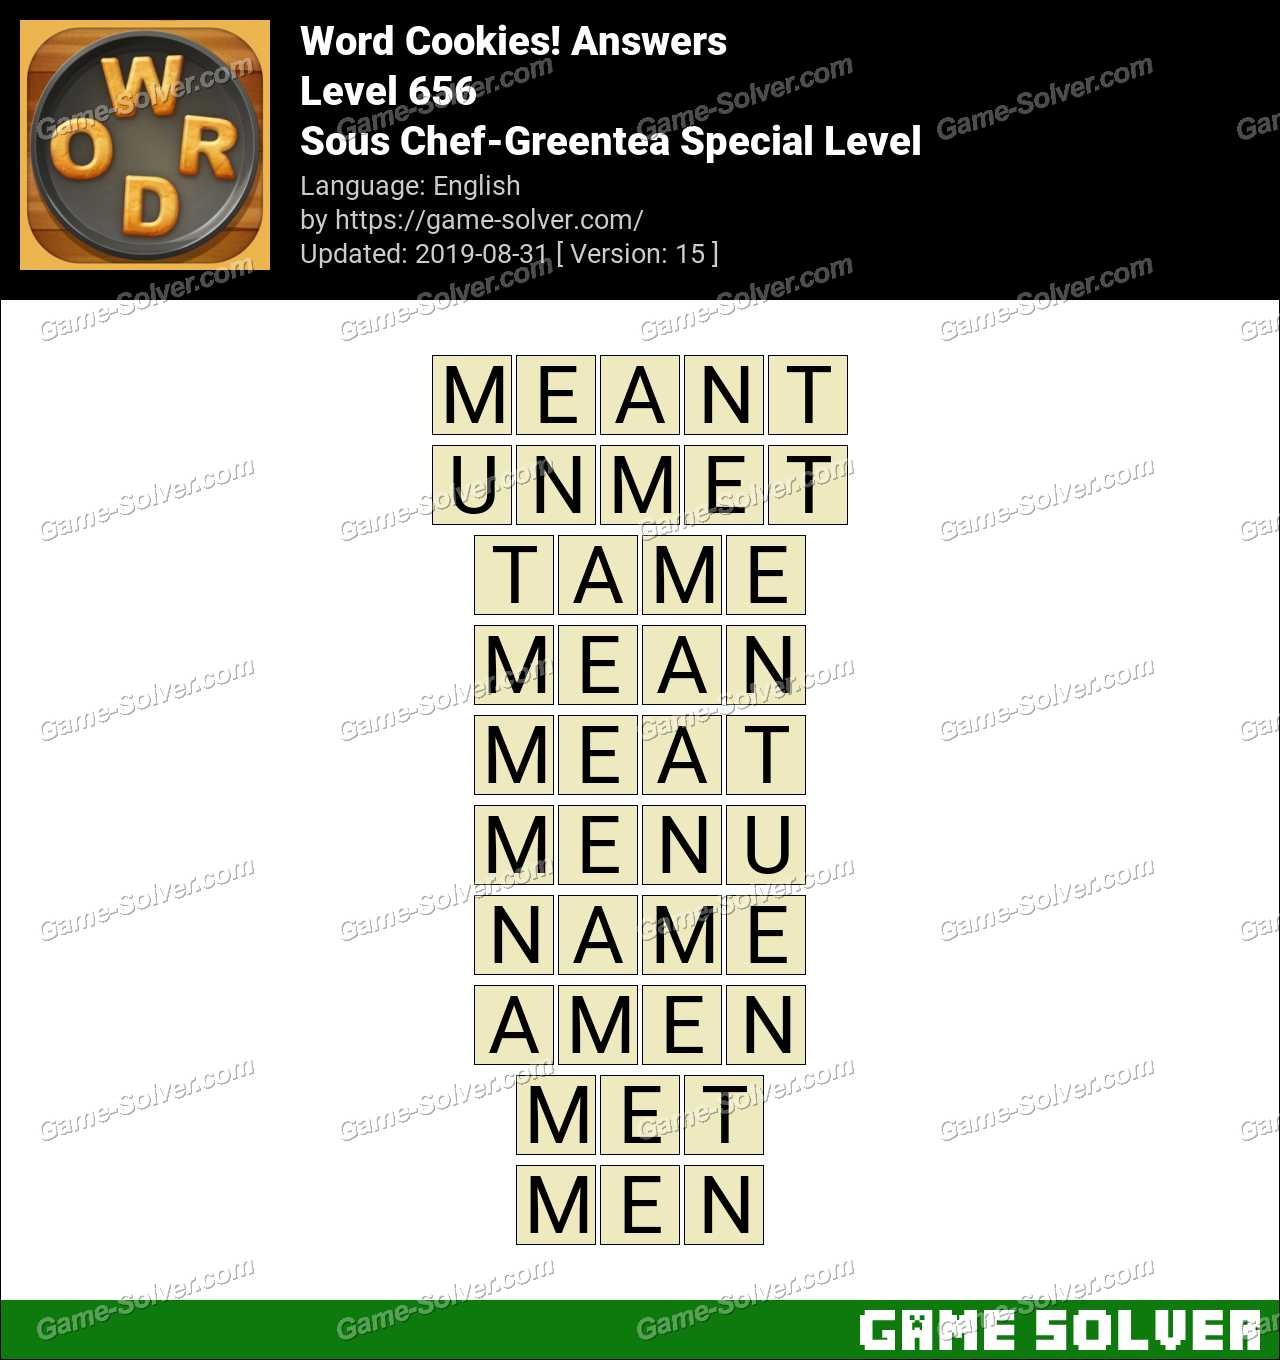 Word Cookies Sous Chef-Greentea Special Level Answers